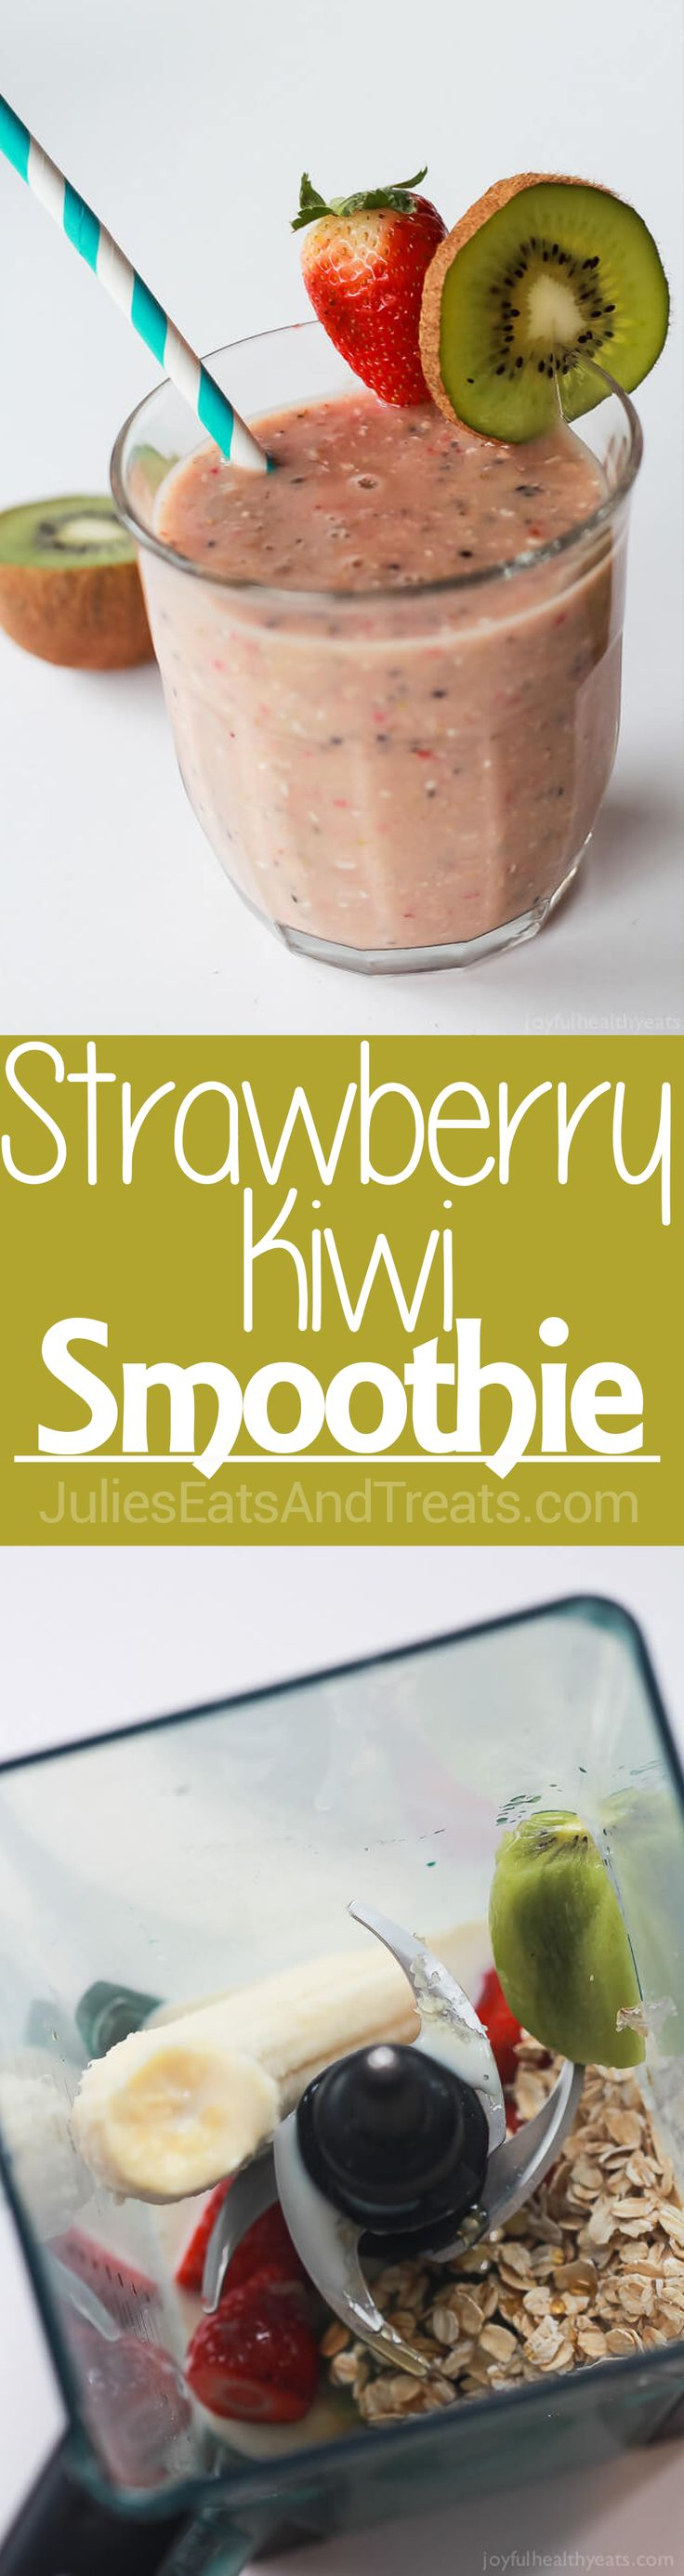 A healthy nutrient packed Strawberry Kiwi Smoothie to start the new year off on the right foot! via @julieseats